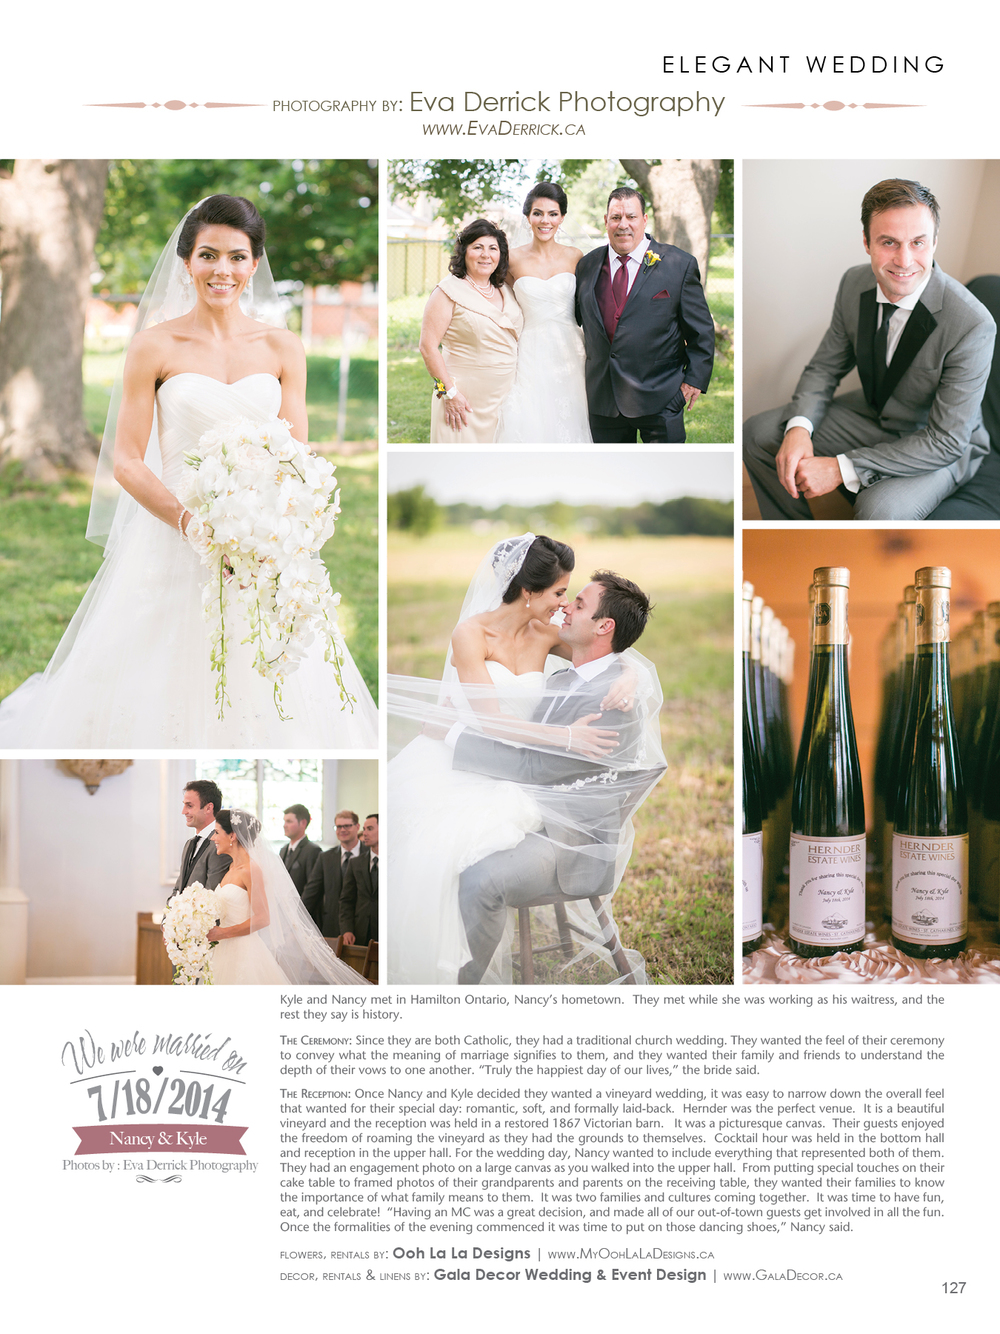 niagara-wedding-photographer-niagara-region-niagara-weddings-elegant-wedding-magazine-feature-nancy-kyle-chipchura-phoenix-coyotes-eva-derrick-photography-hernder-estate-wines-winery-vineyard-wedding-barn-wedding-3.jpg